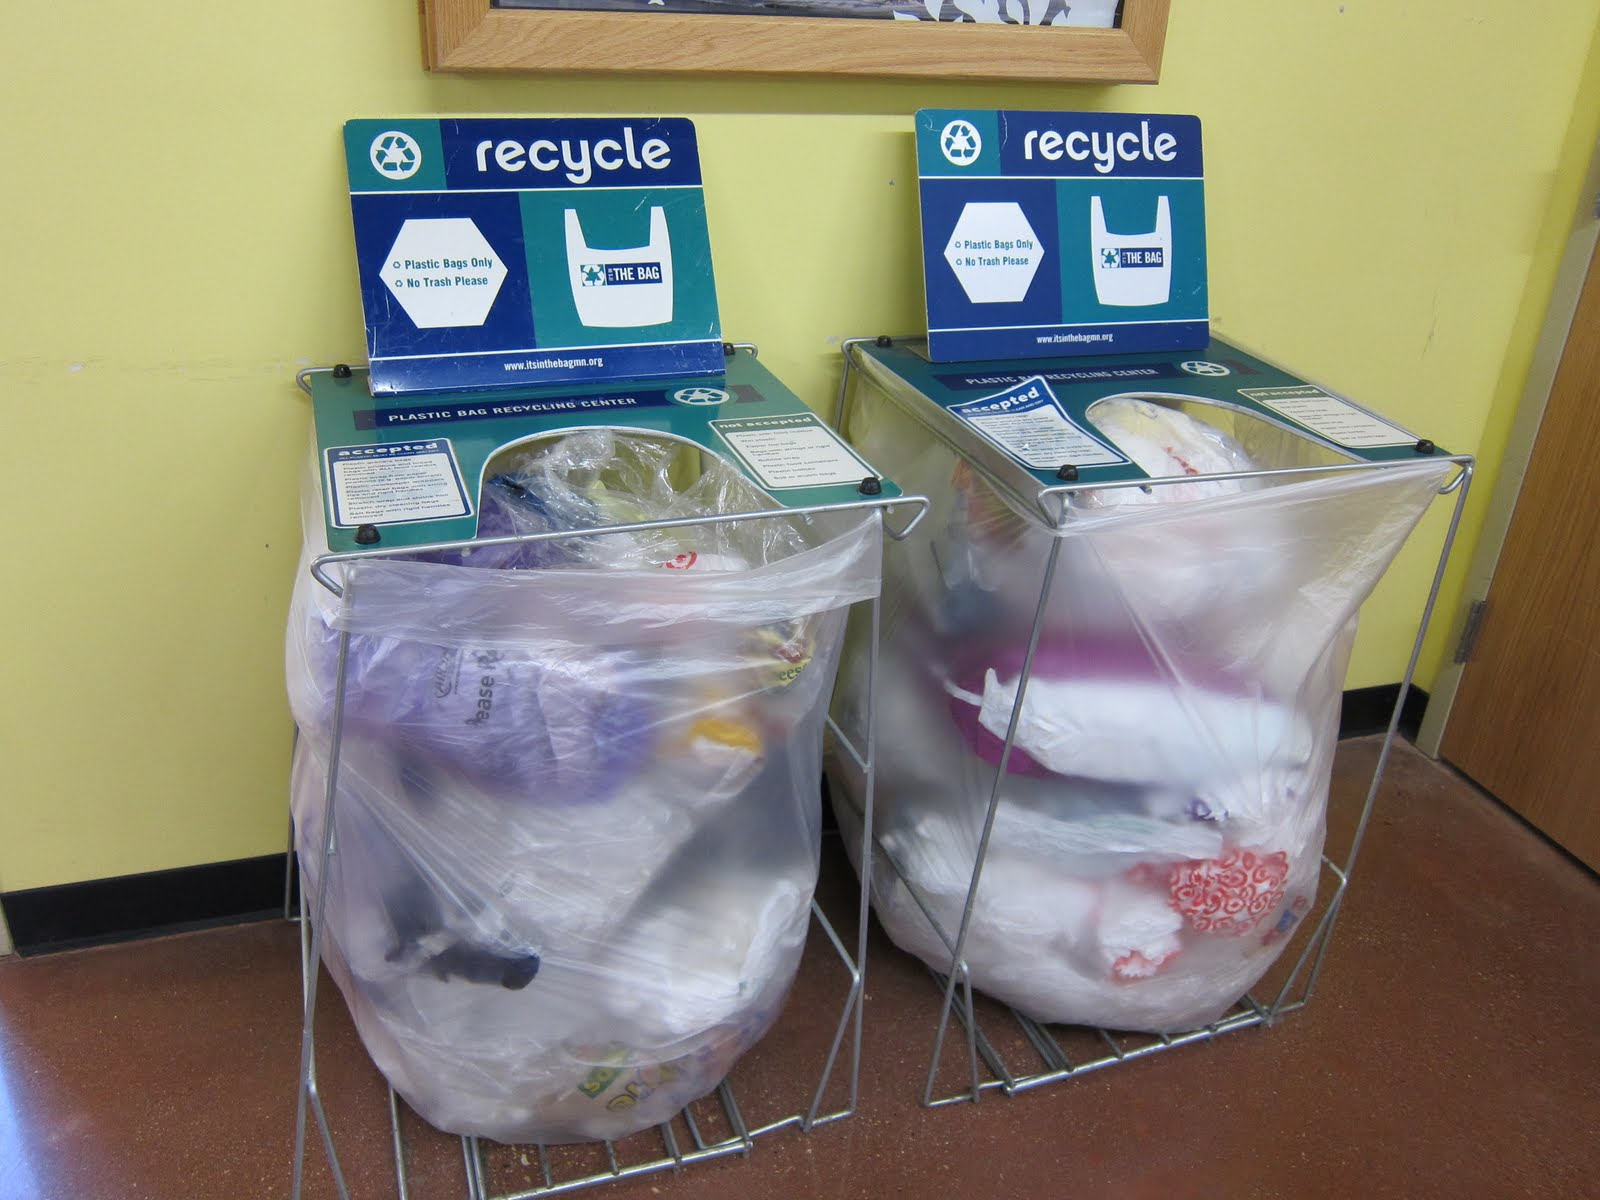 BJ Knapp author of Beside the Music recycles plastic bags.